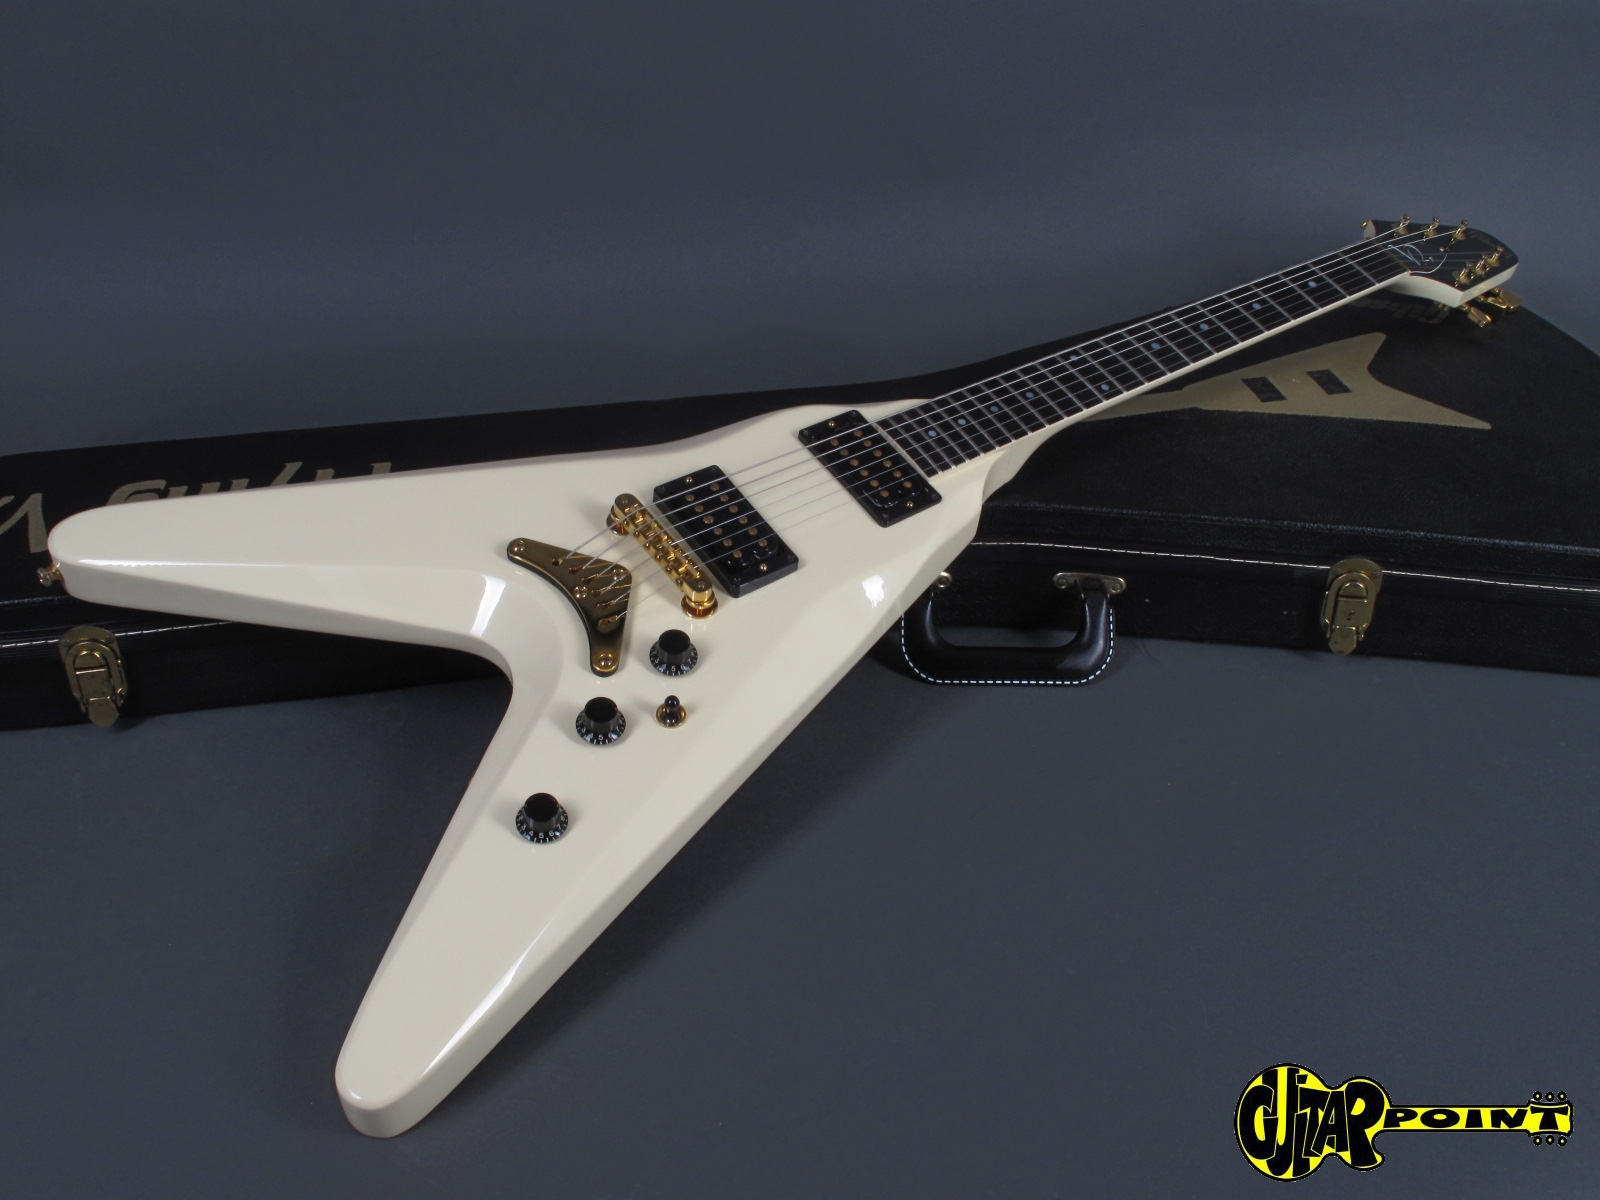 gibson flying v 2 1982 white guitar for sale guitarpoint. Black Bedroom Furniture Sets. Home Design Ideas